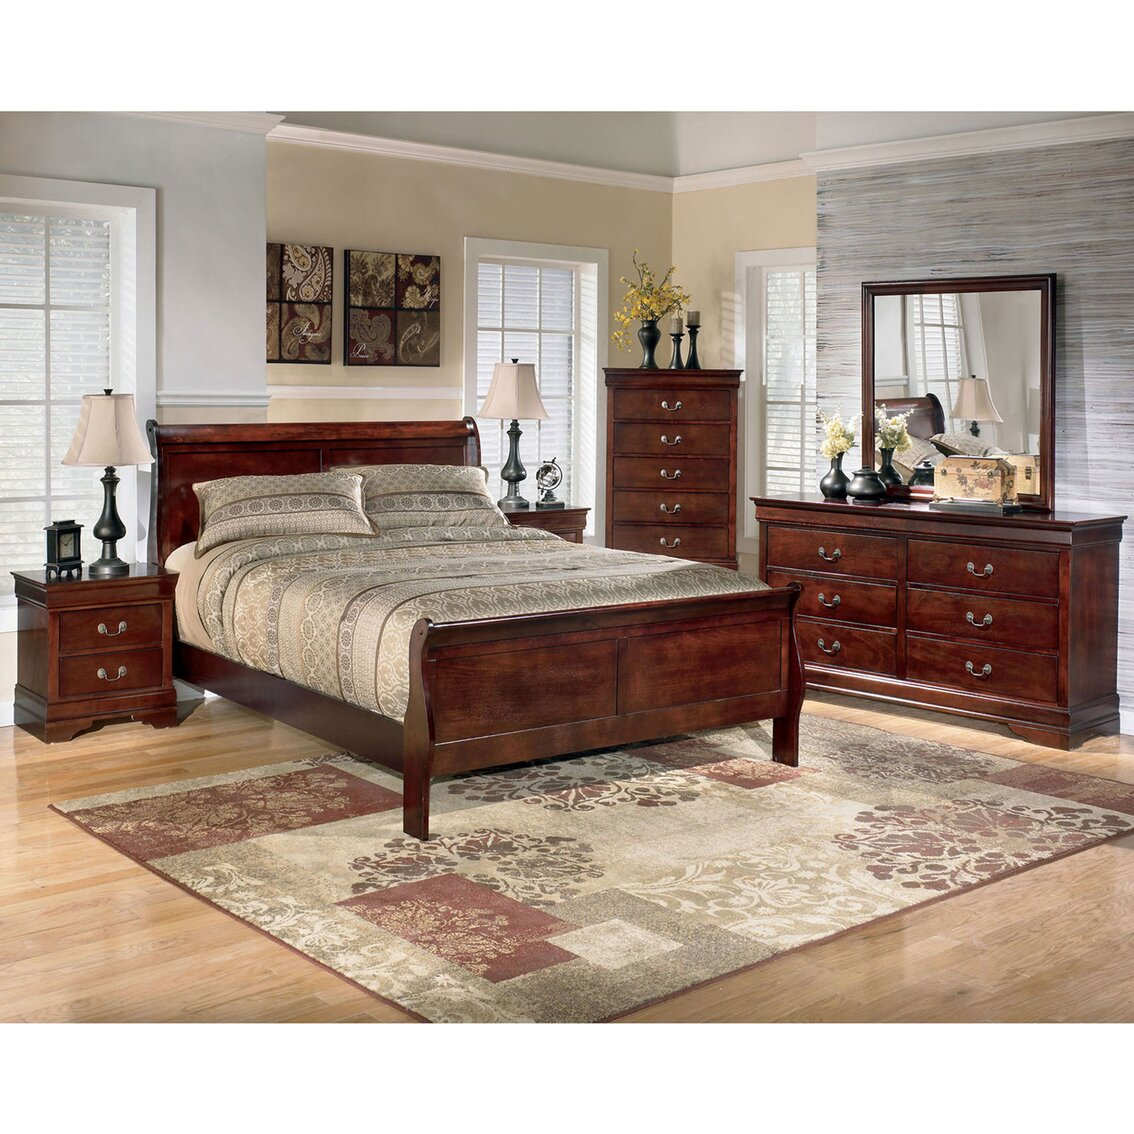 Craigslist Bedroom Sets for Elegant Bedroom Furniture Ideas: Leather Sofa Craigslist | Craigslist Dining Room Chairs | Craigslist Bedroom Sets